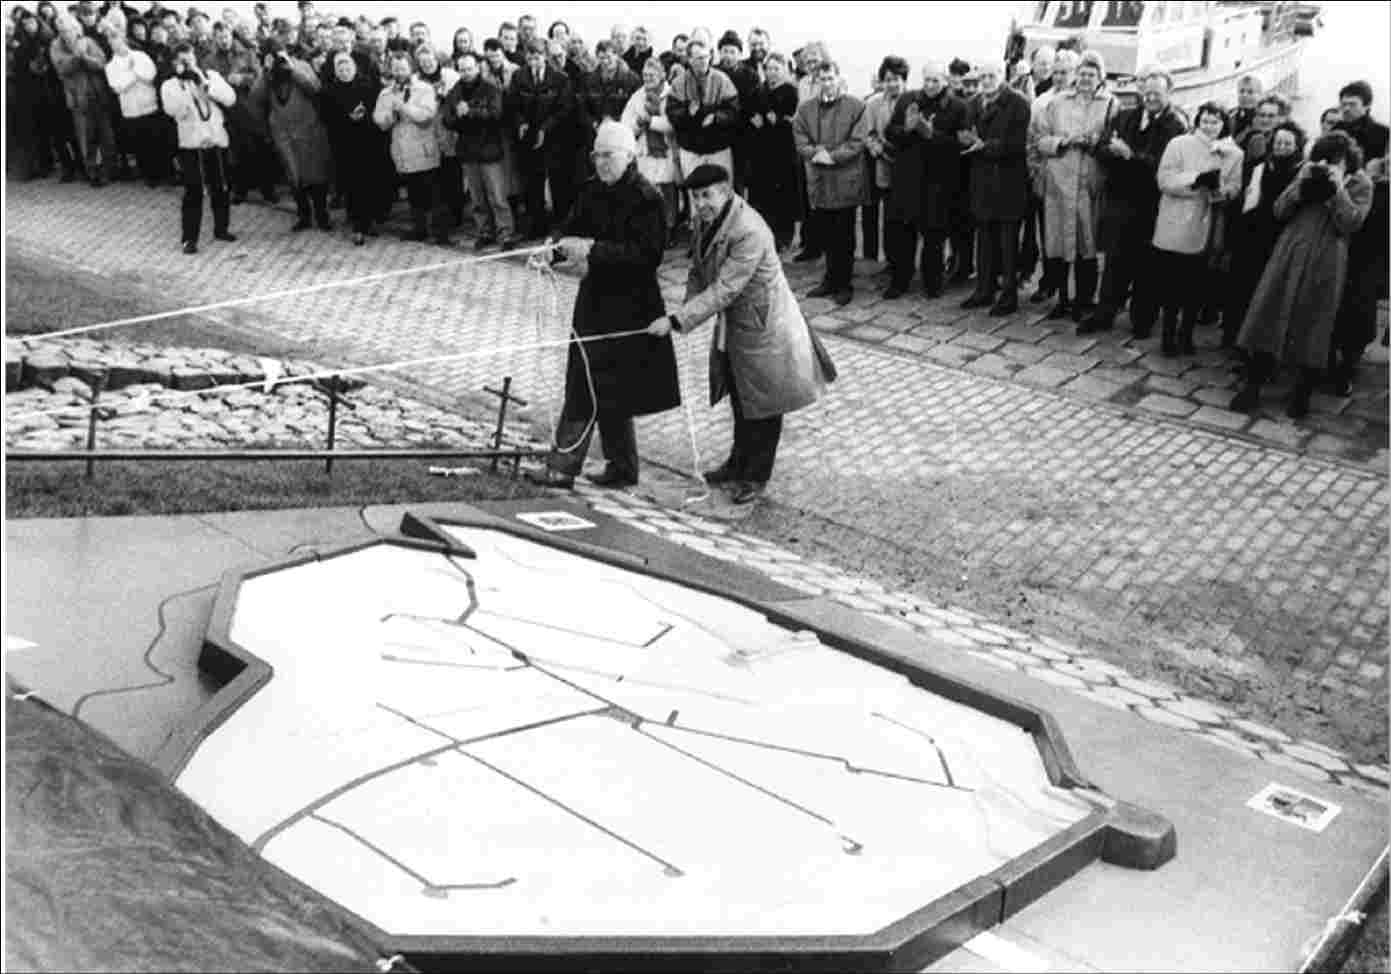 The unveiling of a model of the Noordoostpolder on the dike at Nagele, opposite Havenweg / Sluitgatweg, in memory of the fact that fifty years ago, the last dike section around the Noordoostpolder was closed. Left: B. Blikman (deputy), right: C. van der Wildt (chief engineer-director of the Flevoland board of Rijkswaterstaat), 1990.